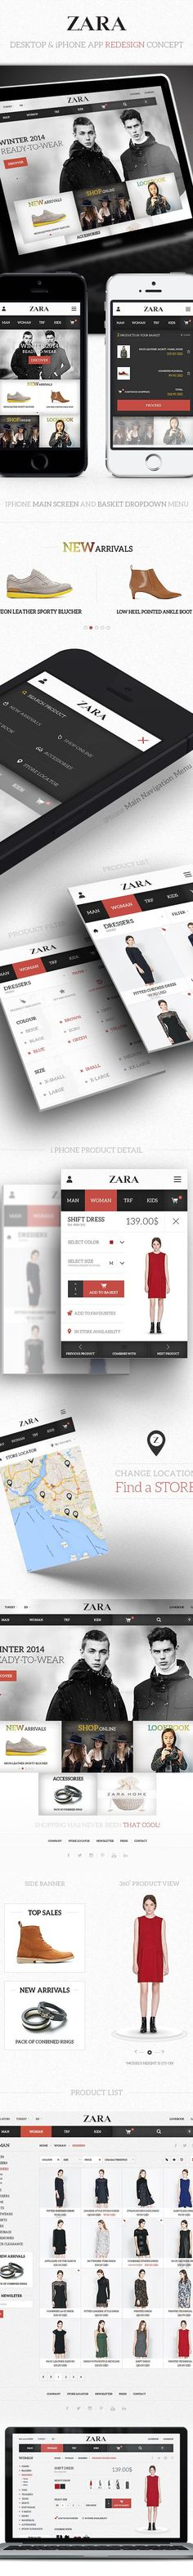 Zara / Desktop & iPhone App Redesign by Eray Demirsoy, via Behance Web Design Gallery, Web Ui Design, Site Design, Design Layouts, Mobile Application Design, Mobile Ui Design, Ios, E Commerce, Design Spartan